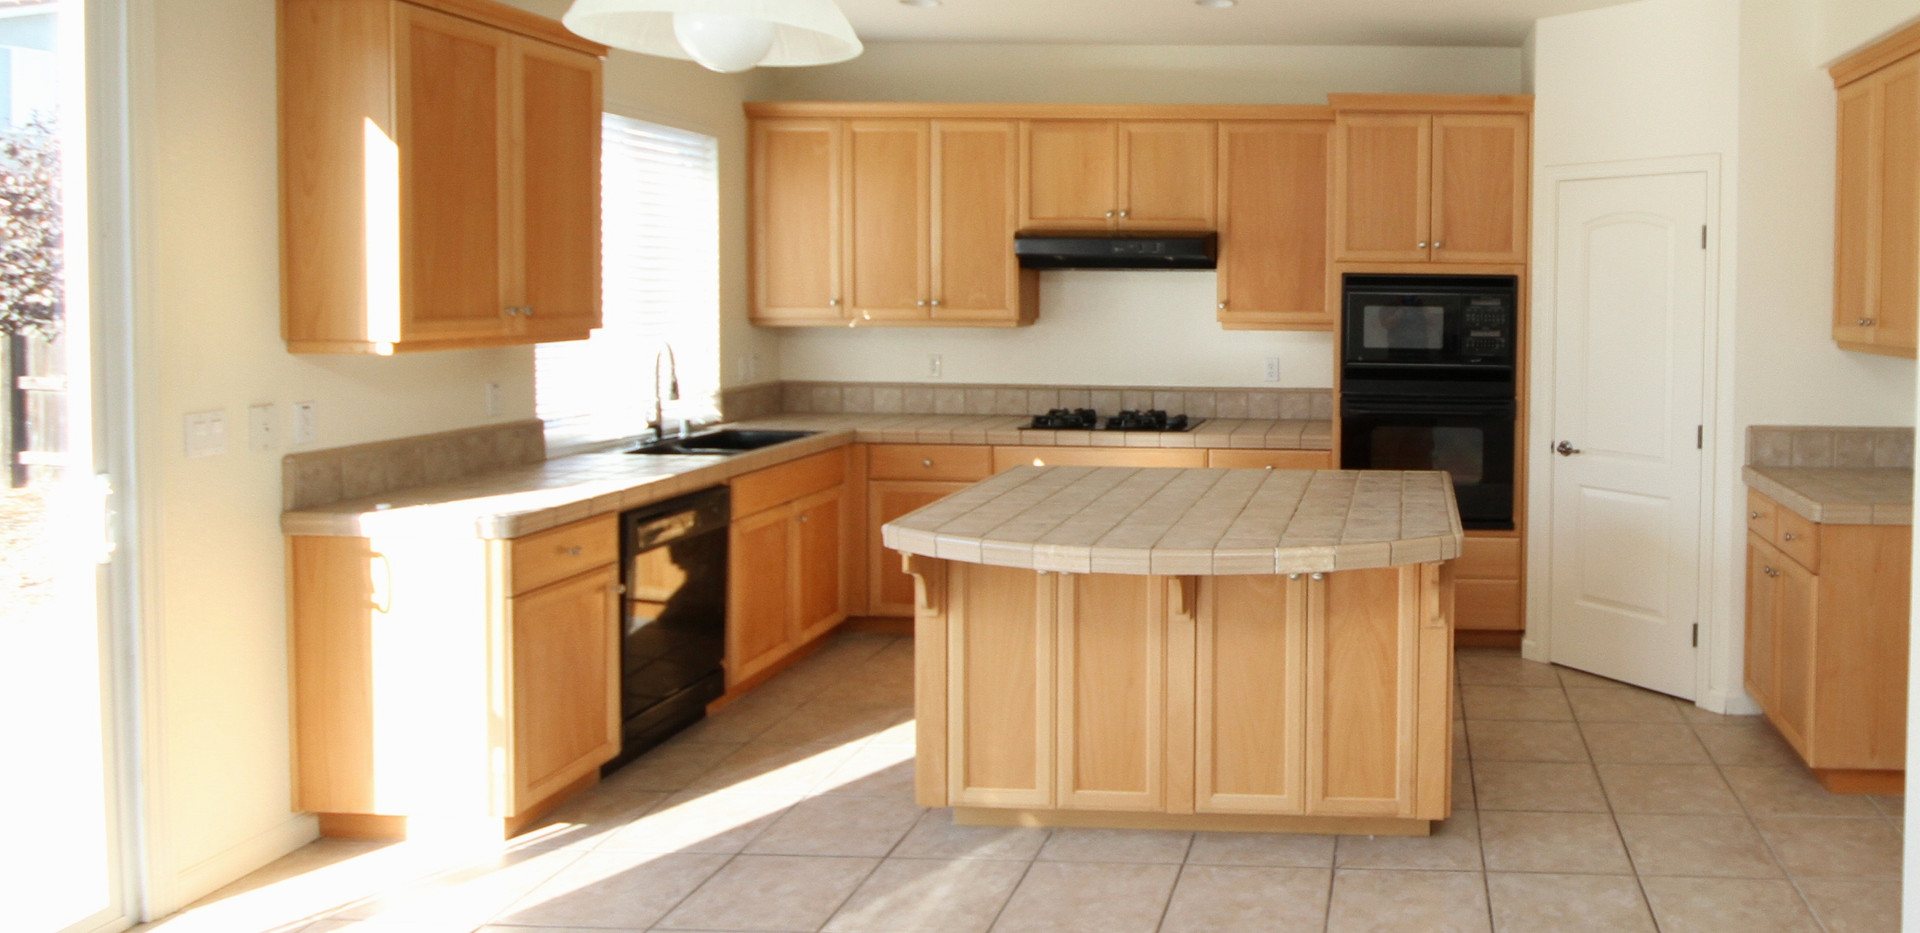 Copy of Kitchen 1.JPG